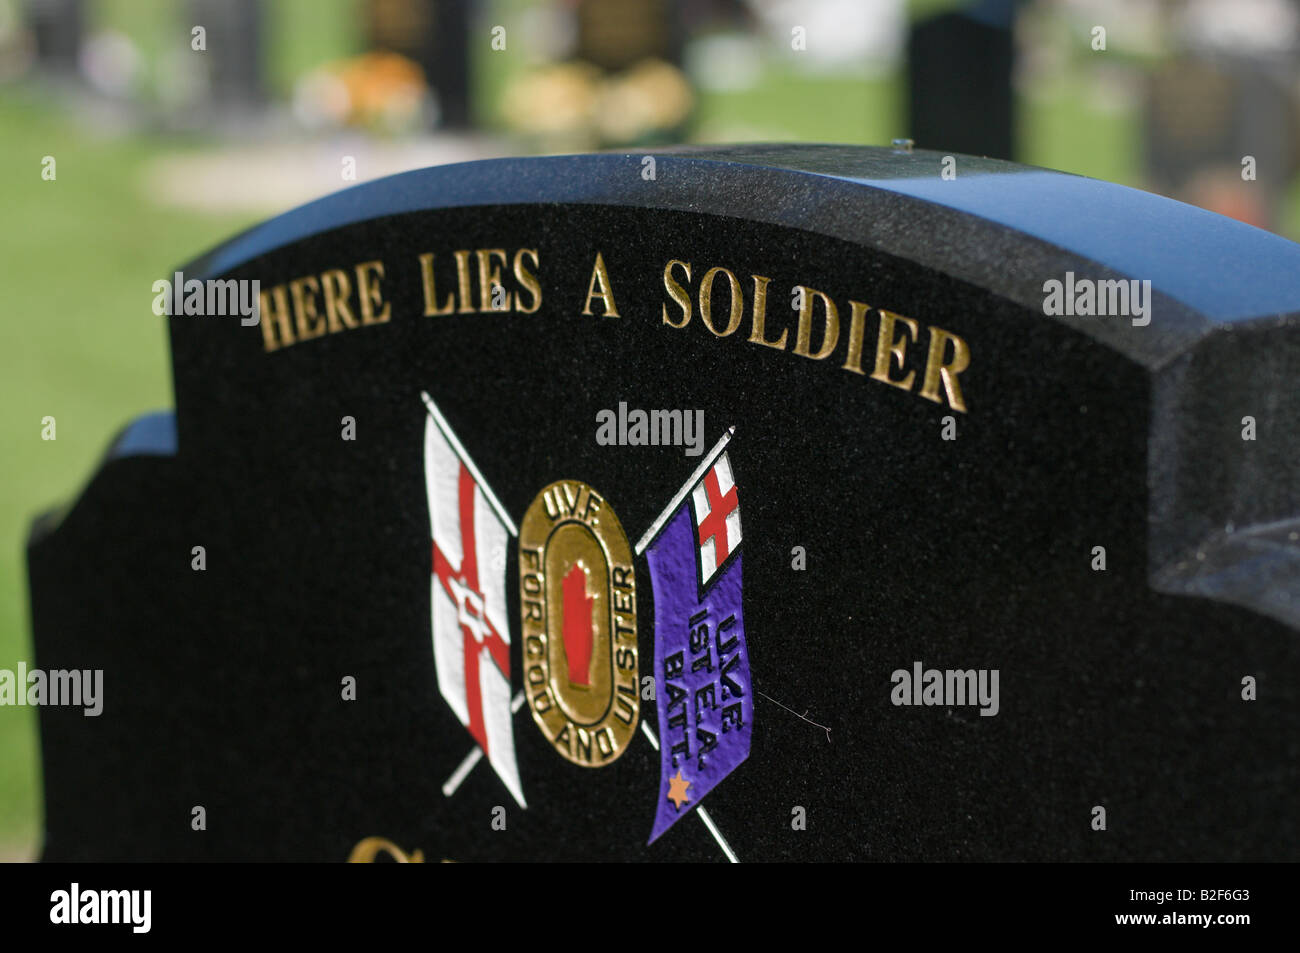 'Here lies a soldier' inscription on a gravestone of a UVF member killed during the troubles. - Stock Image